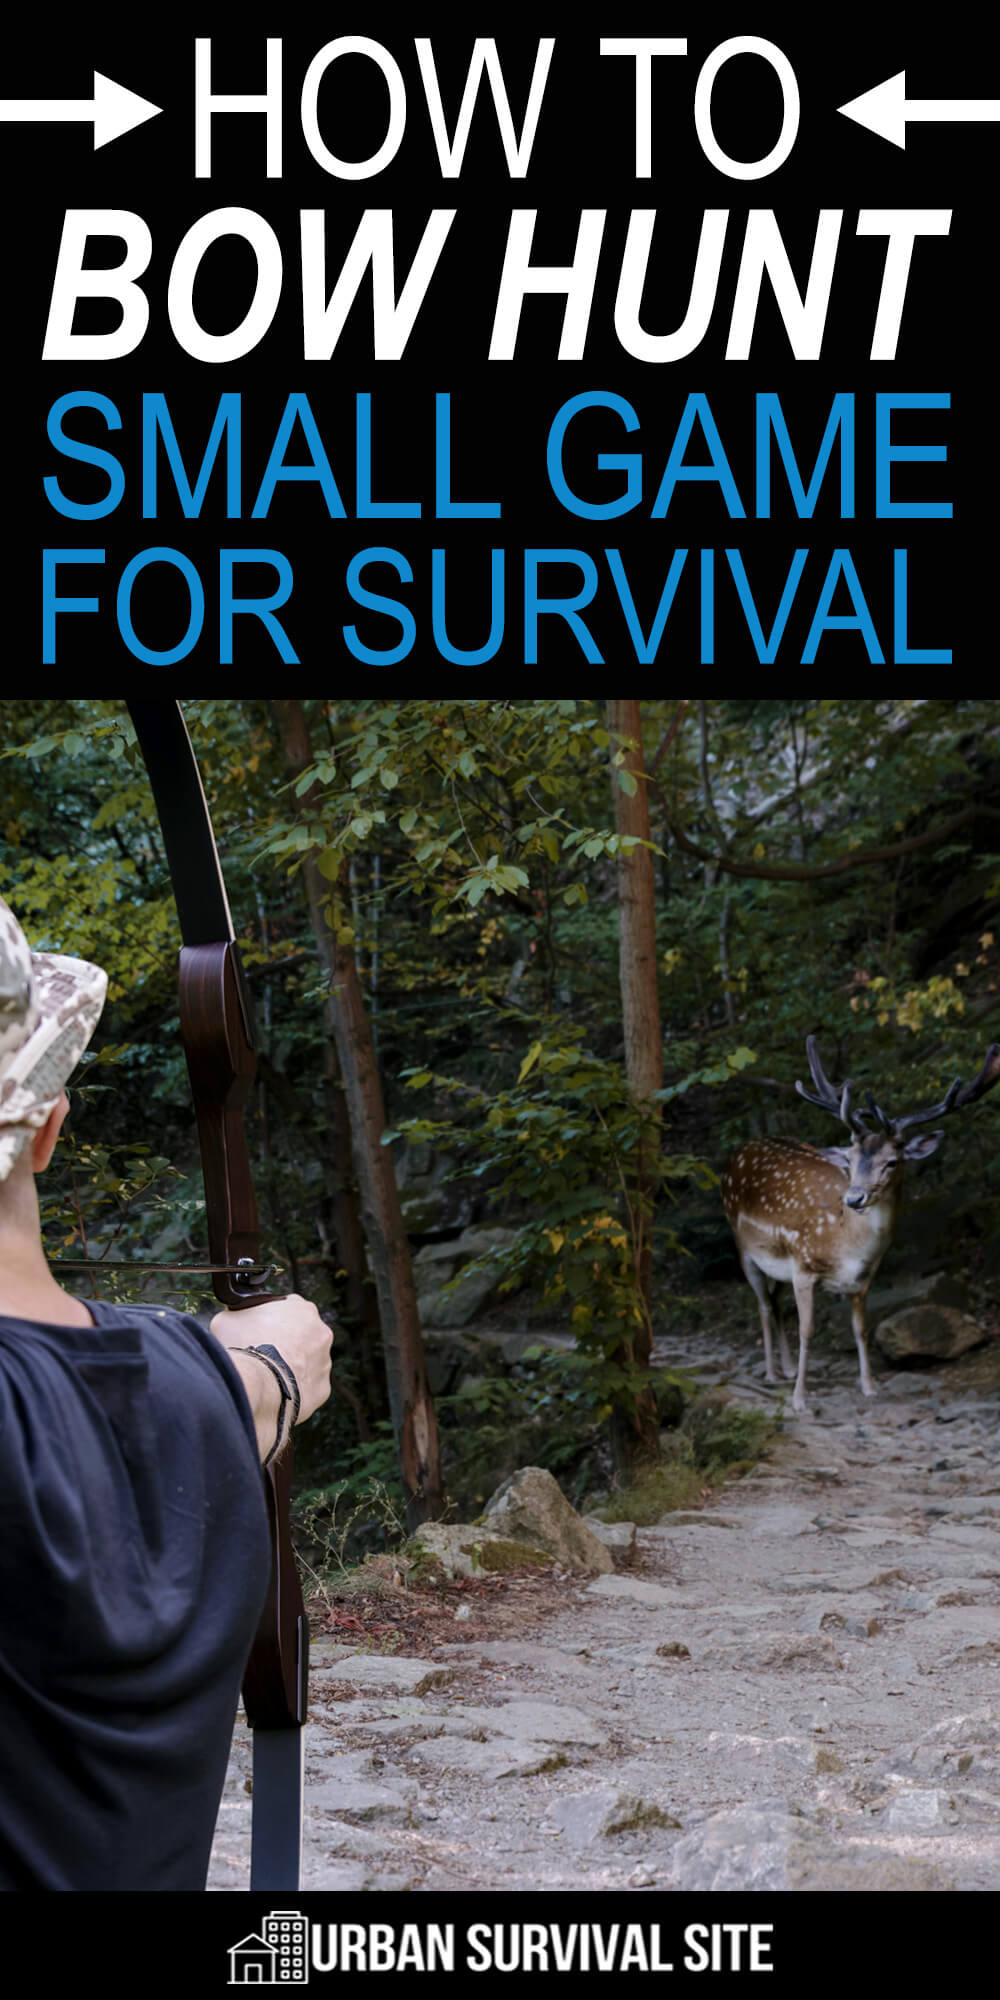 How to Bow Hunt Small Game for Survival